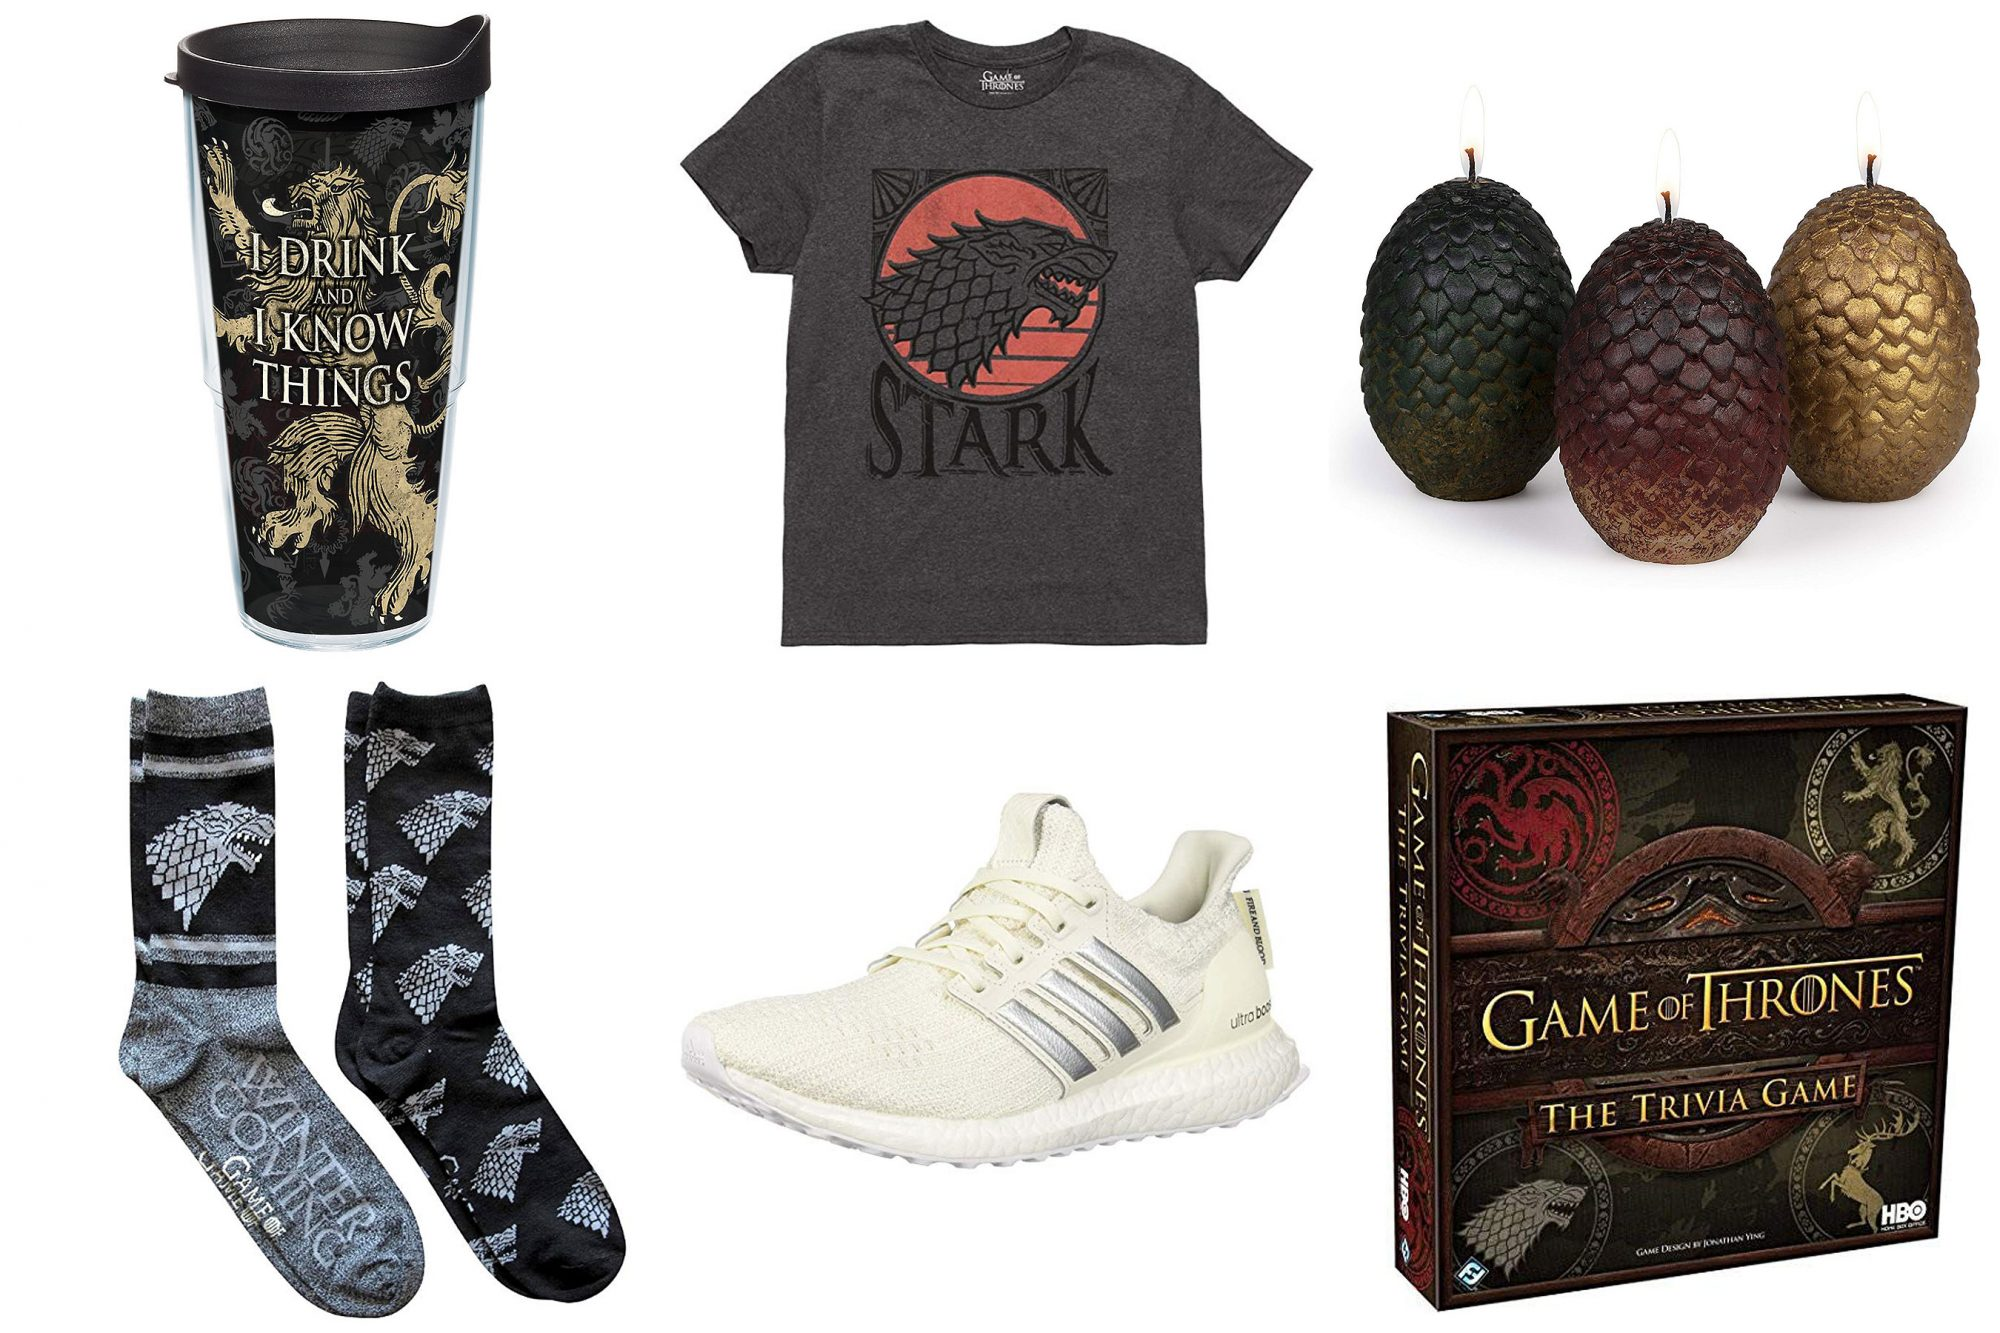 Game of Thrones Gifts Merchandize Amazon